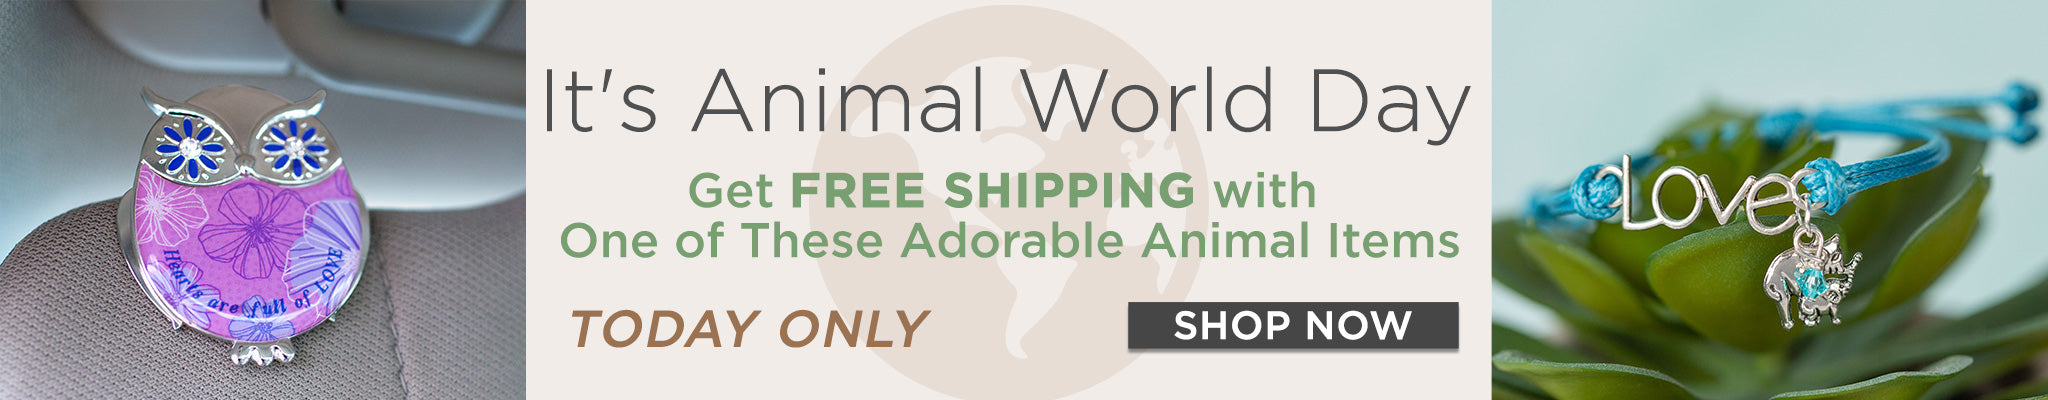 Today's World Animal Day   Get Free Shipping with one of these adorable animal items